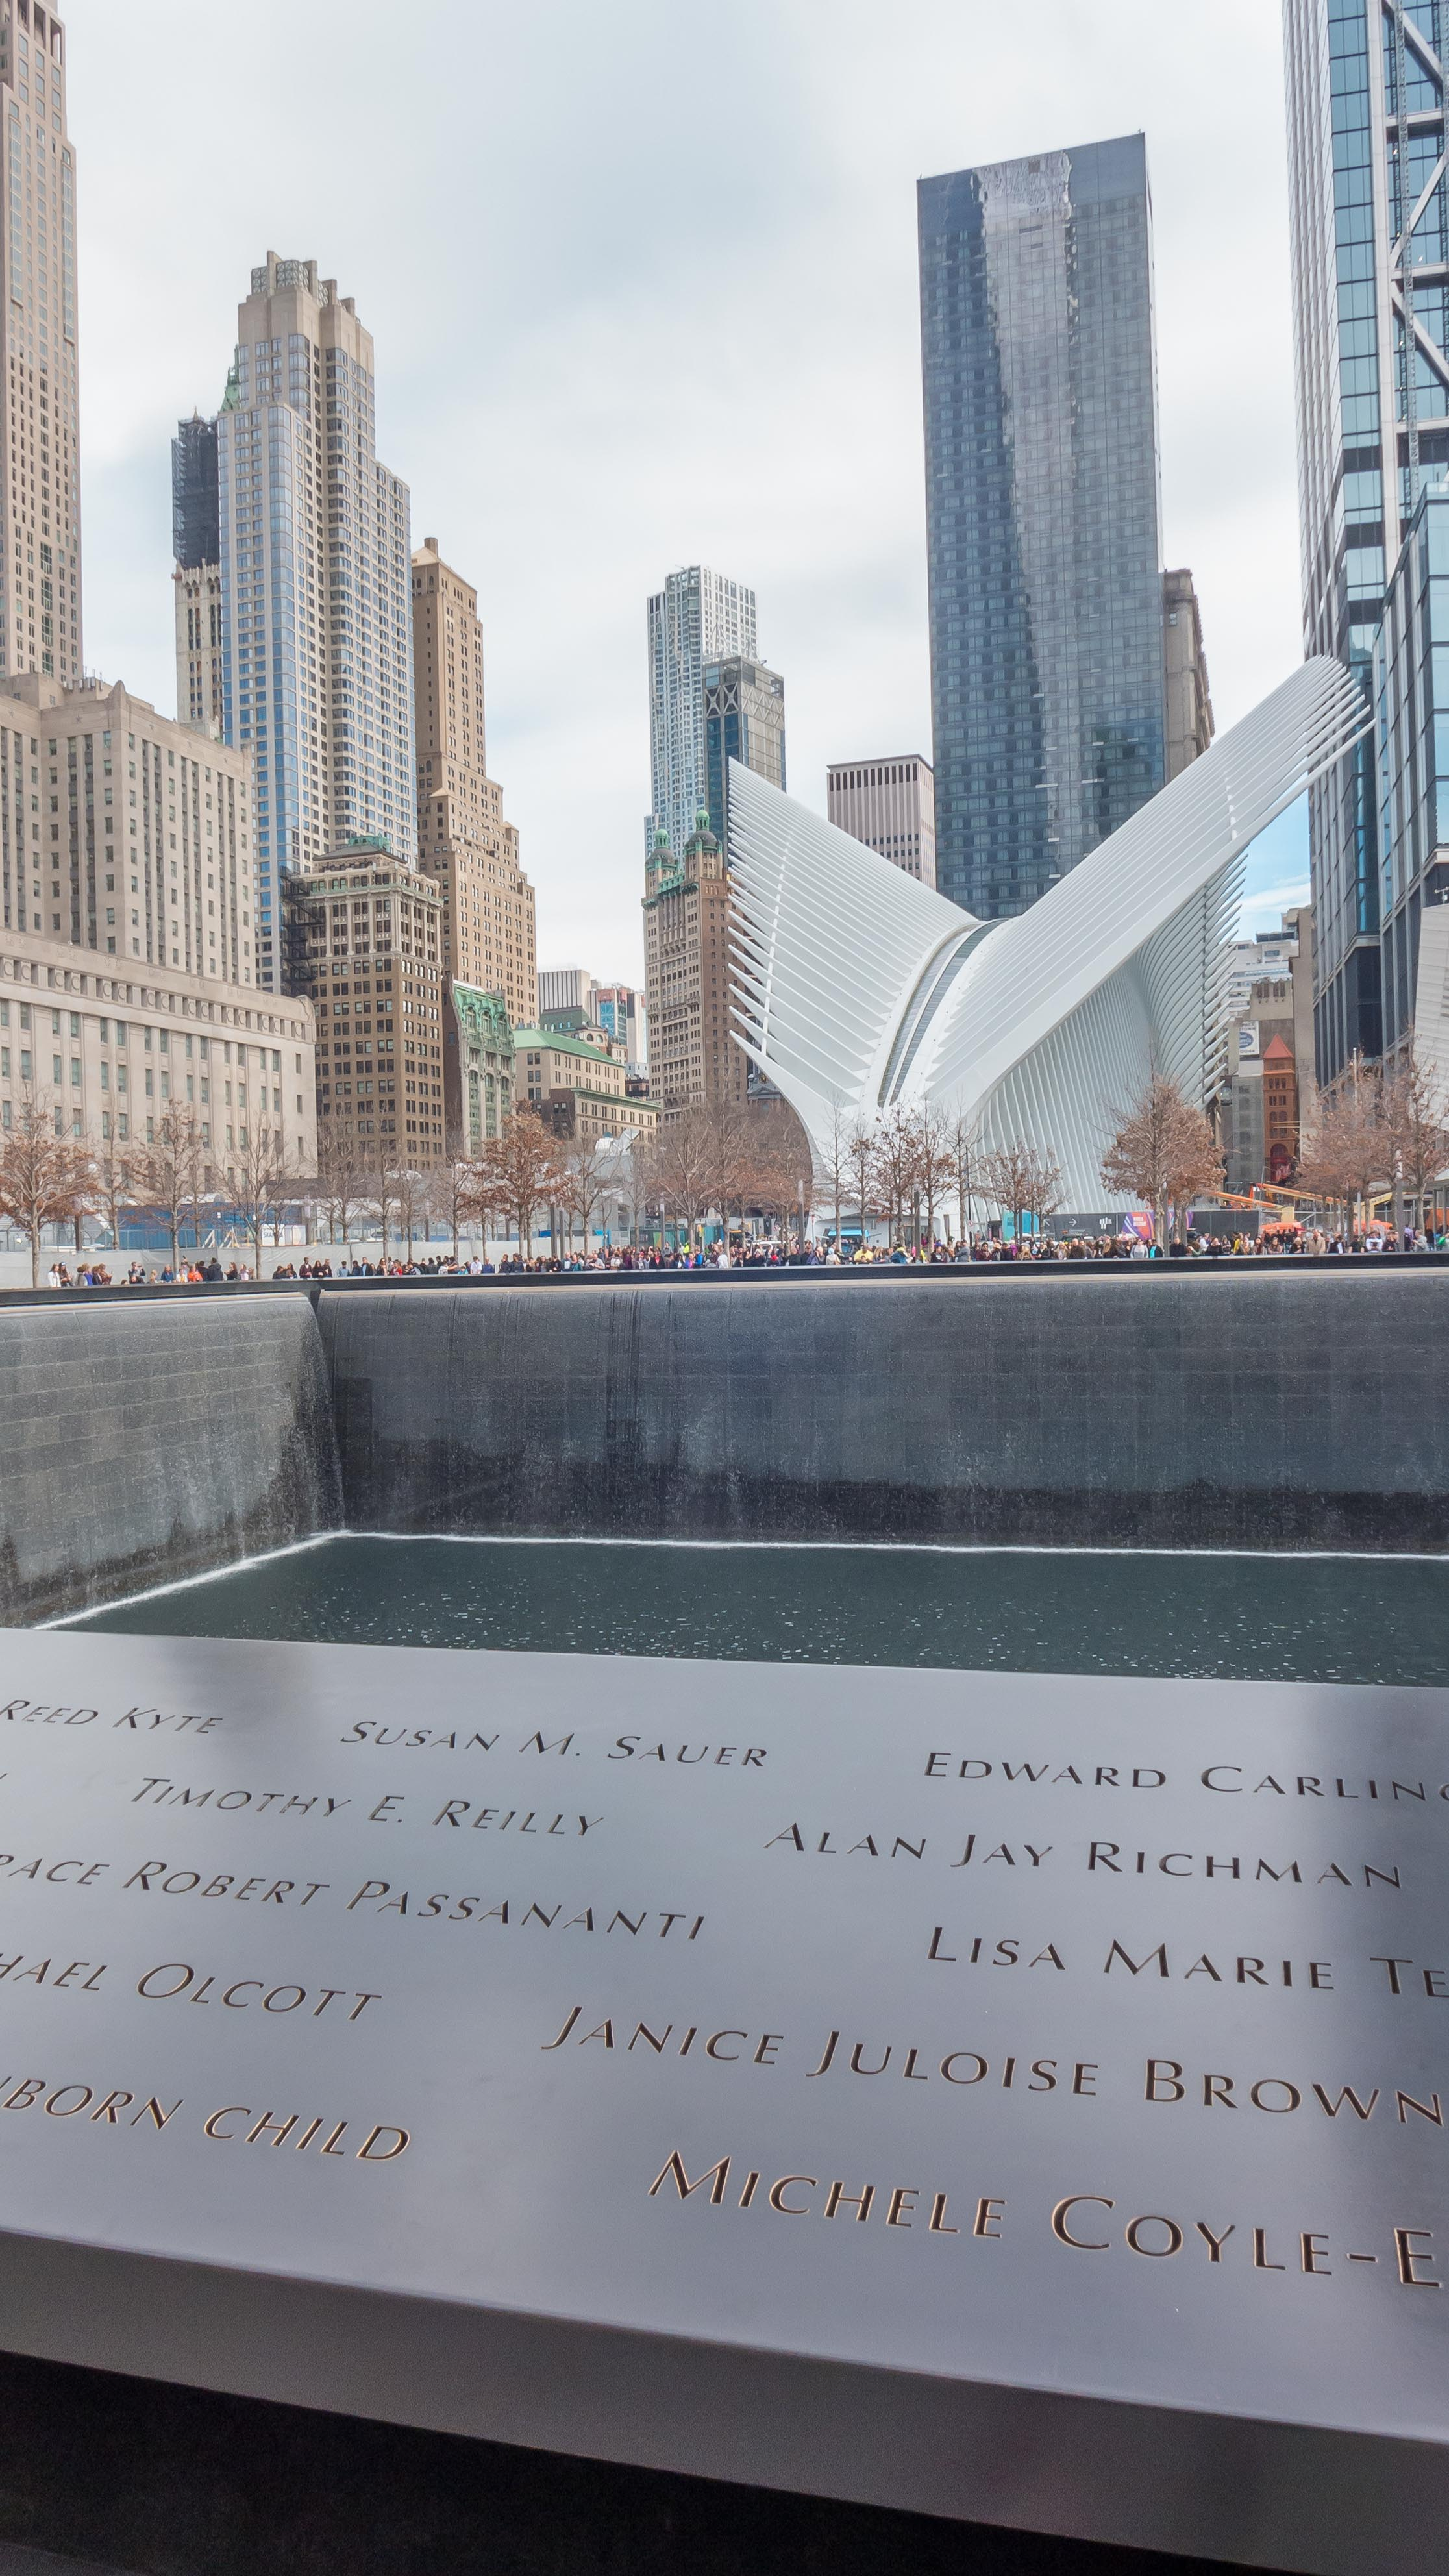 We also took some time to walk around the World Trade Center Memorial. It was my first time visiting on such a beautiful day. It was incredible.